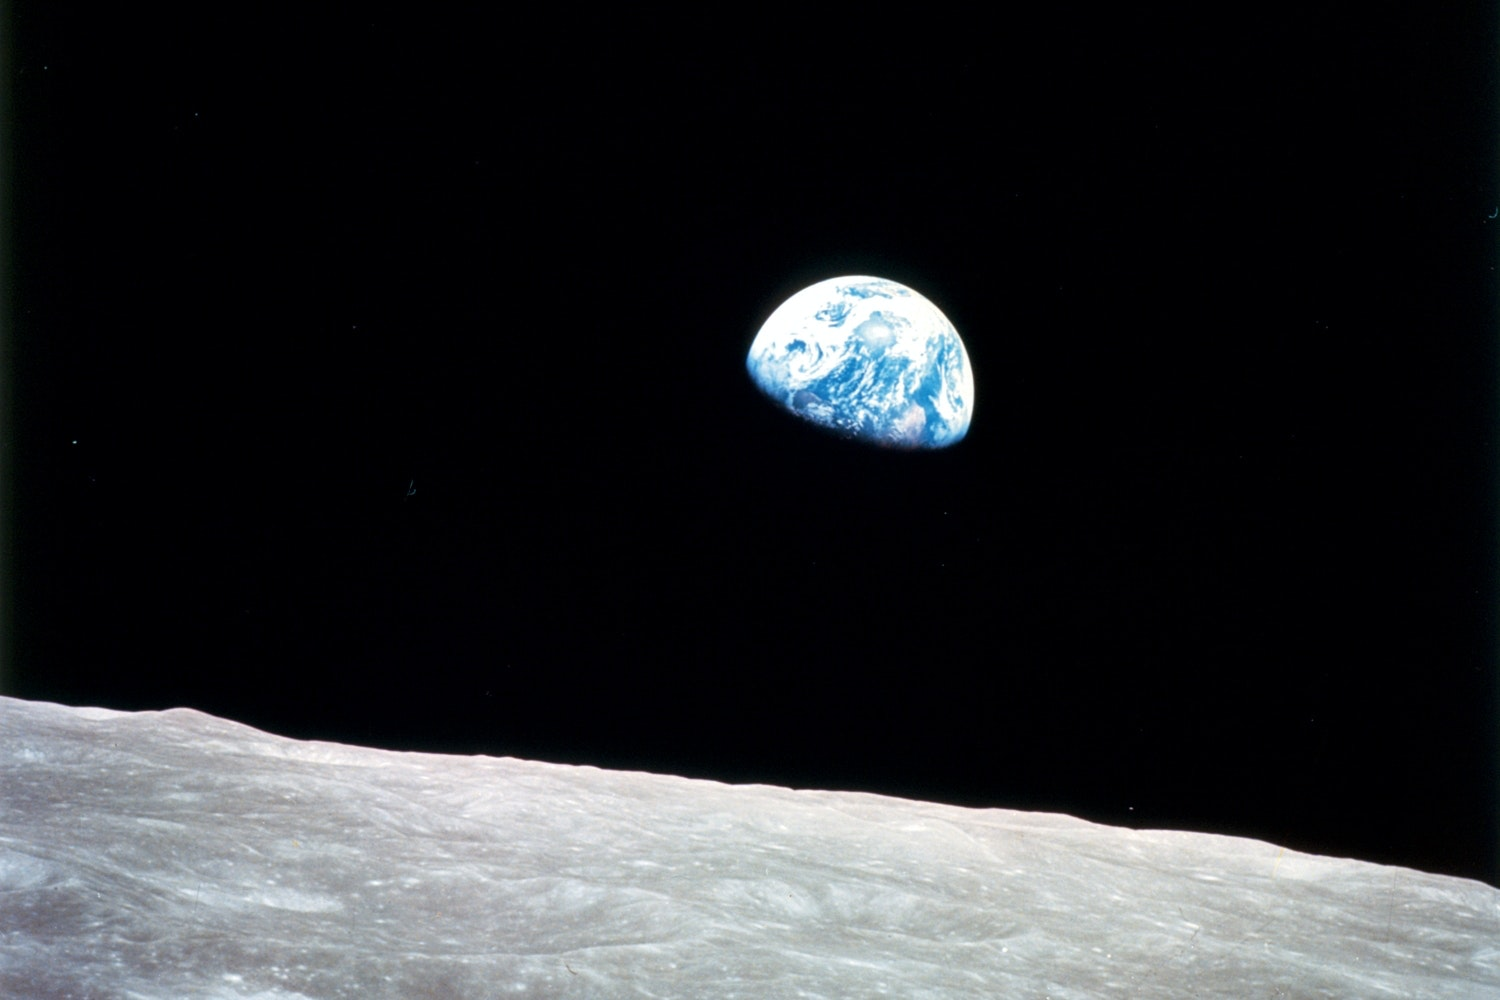 Earth seen from the moon